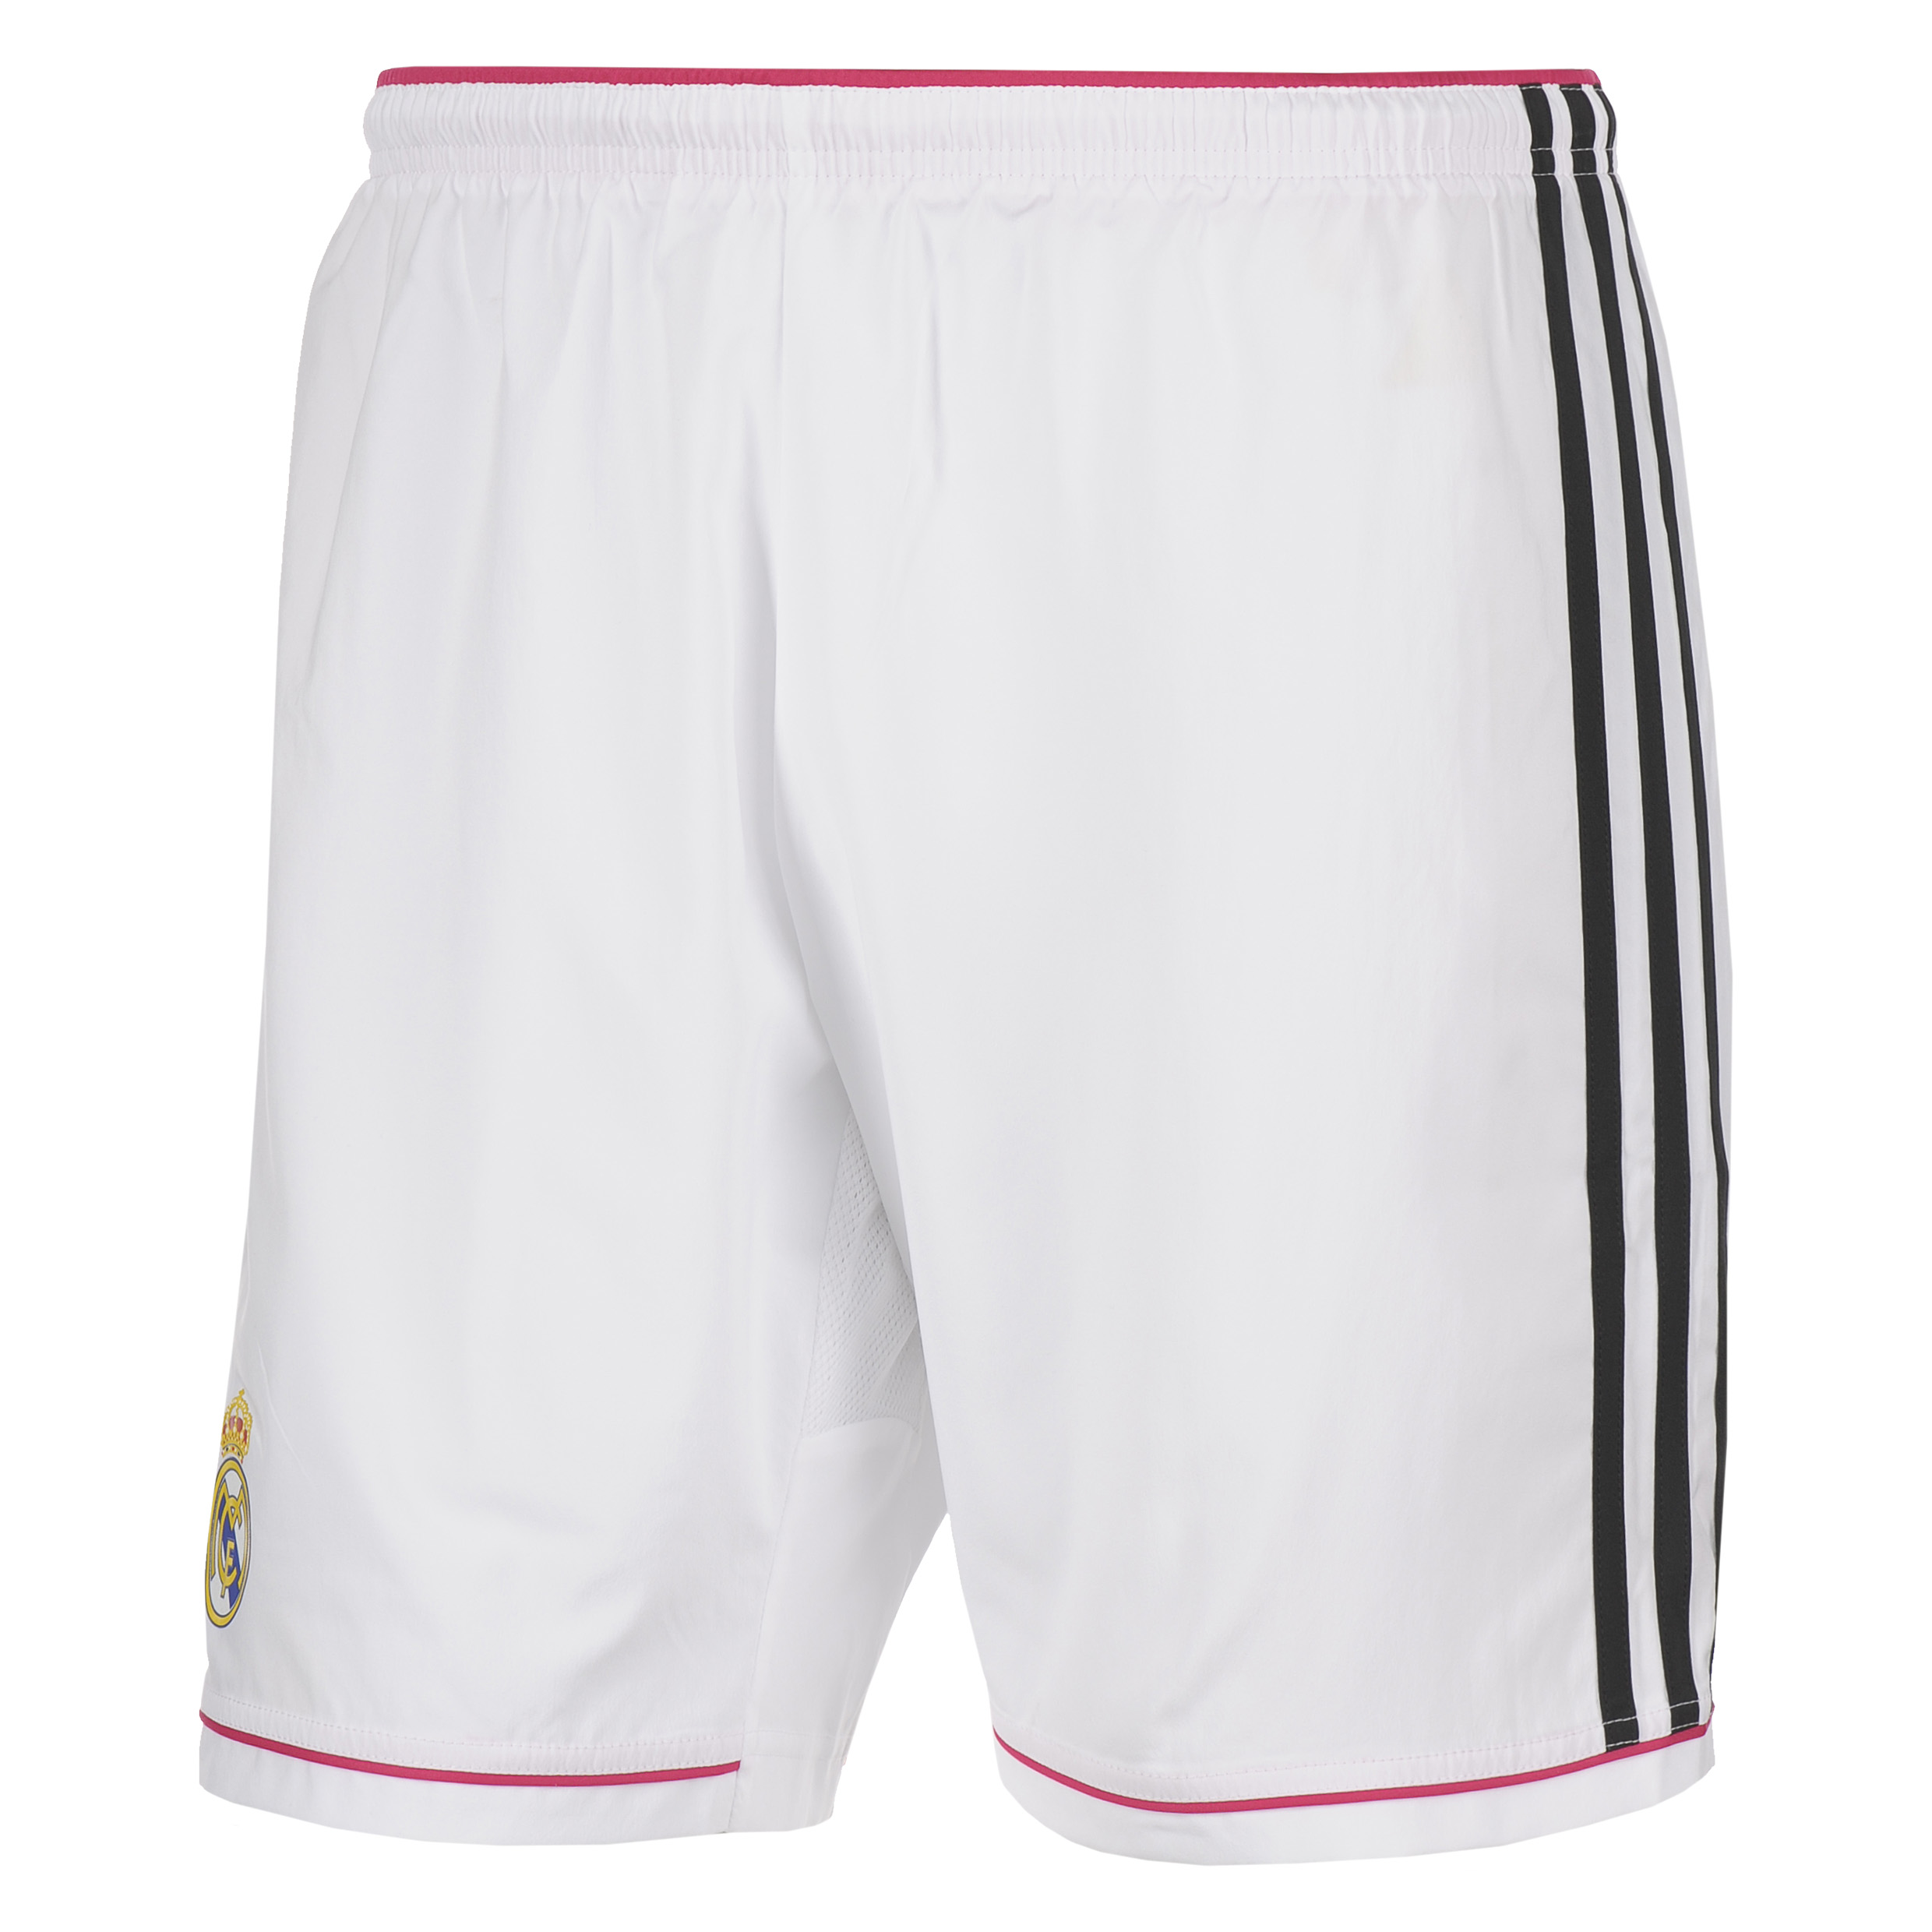 Real Madrid Home Short 2014/15